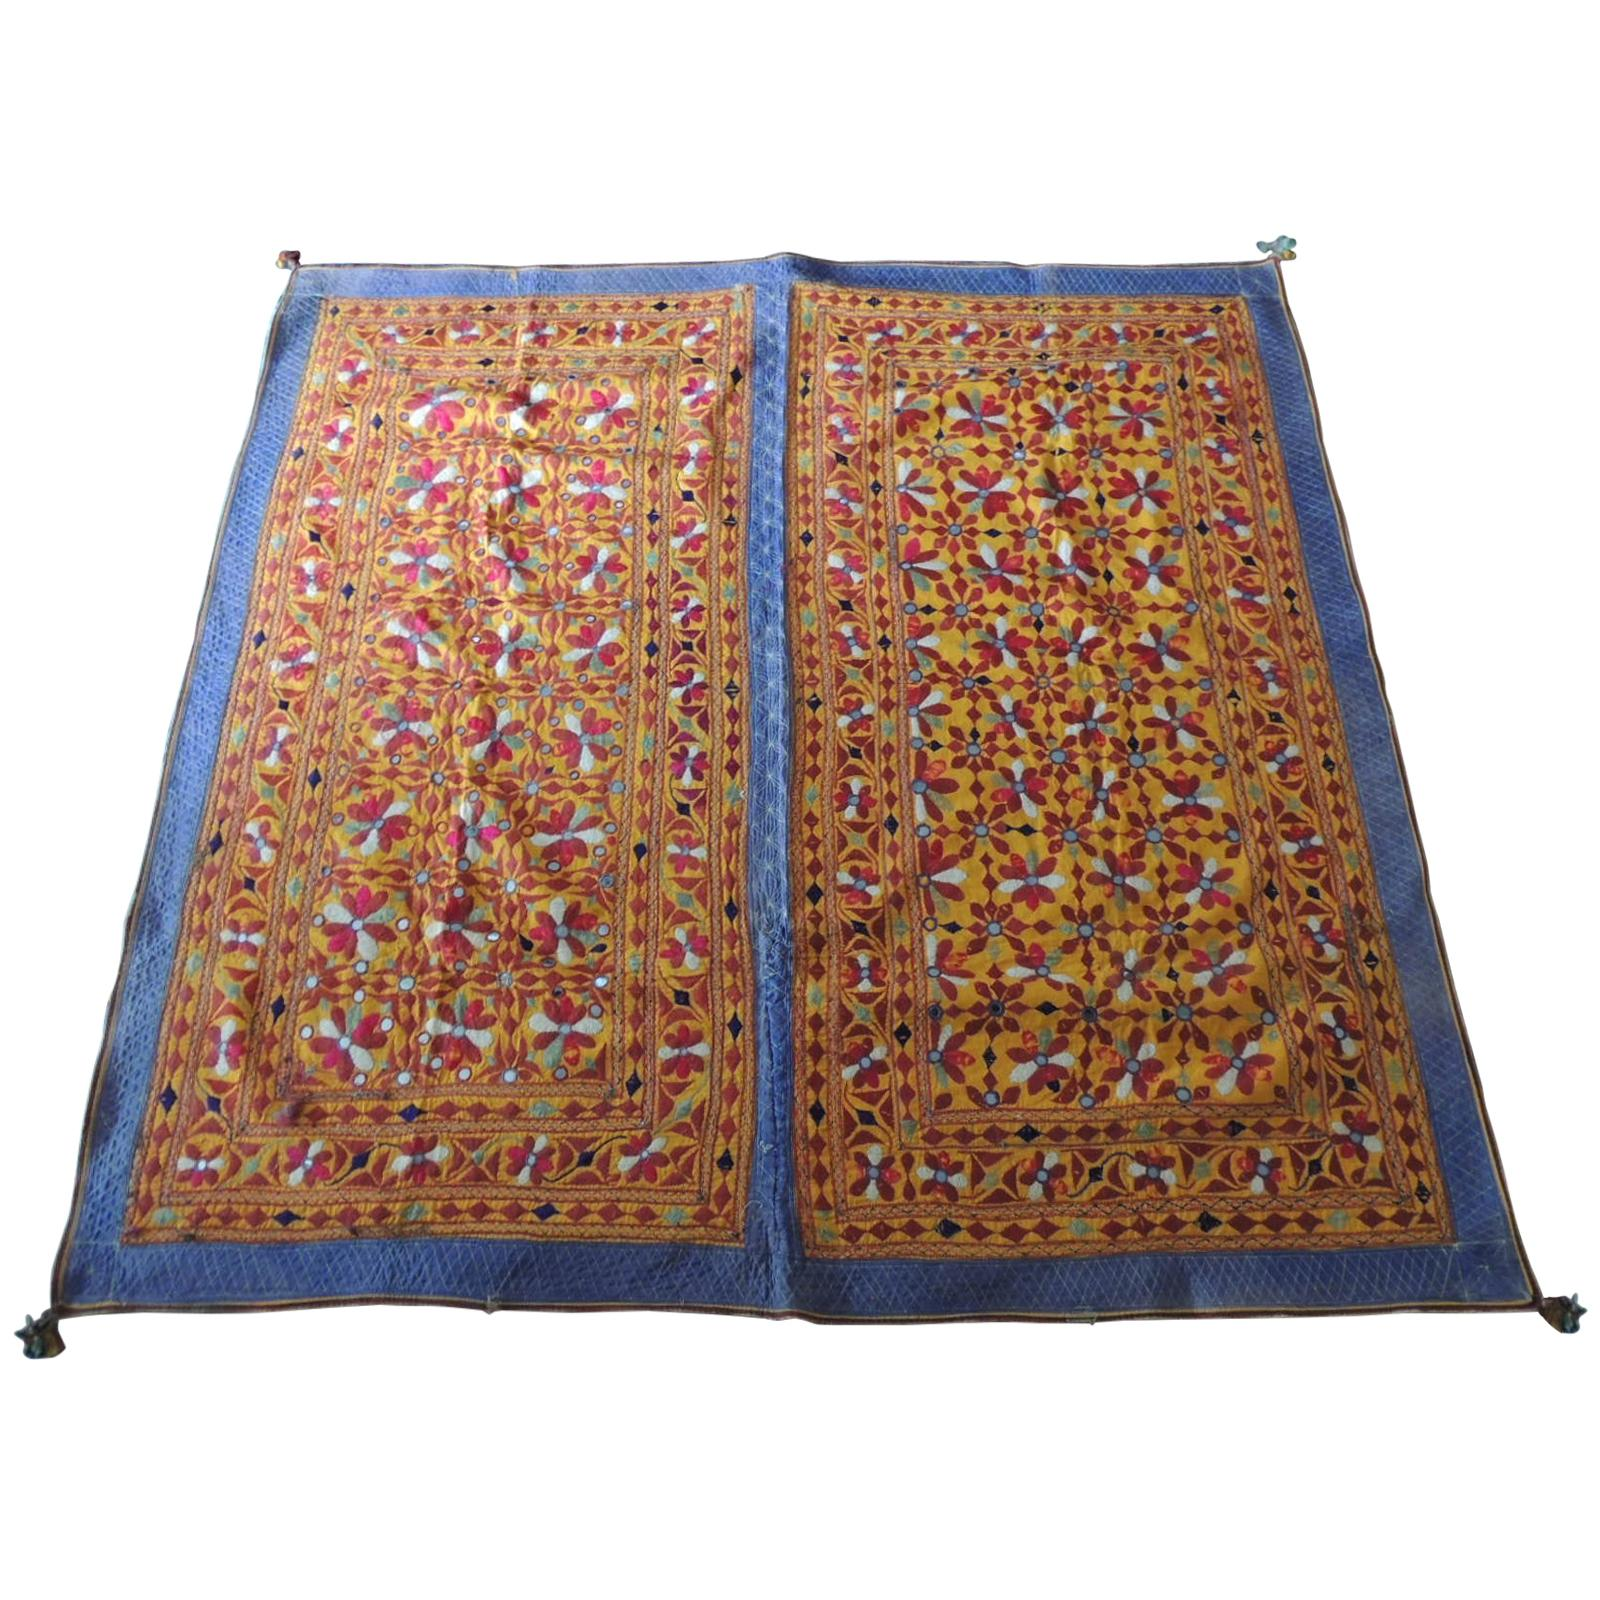 Large Antique Embroidered Panel with Floral Pattern